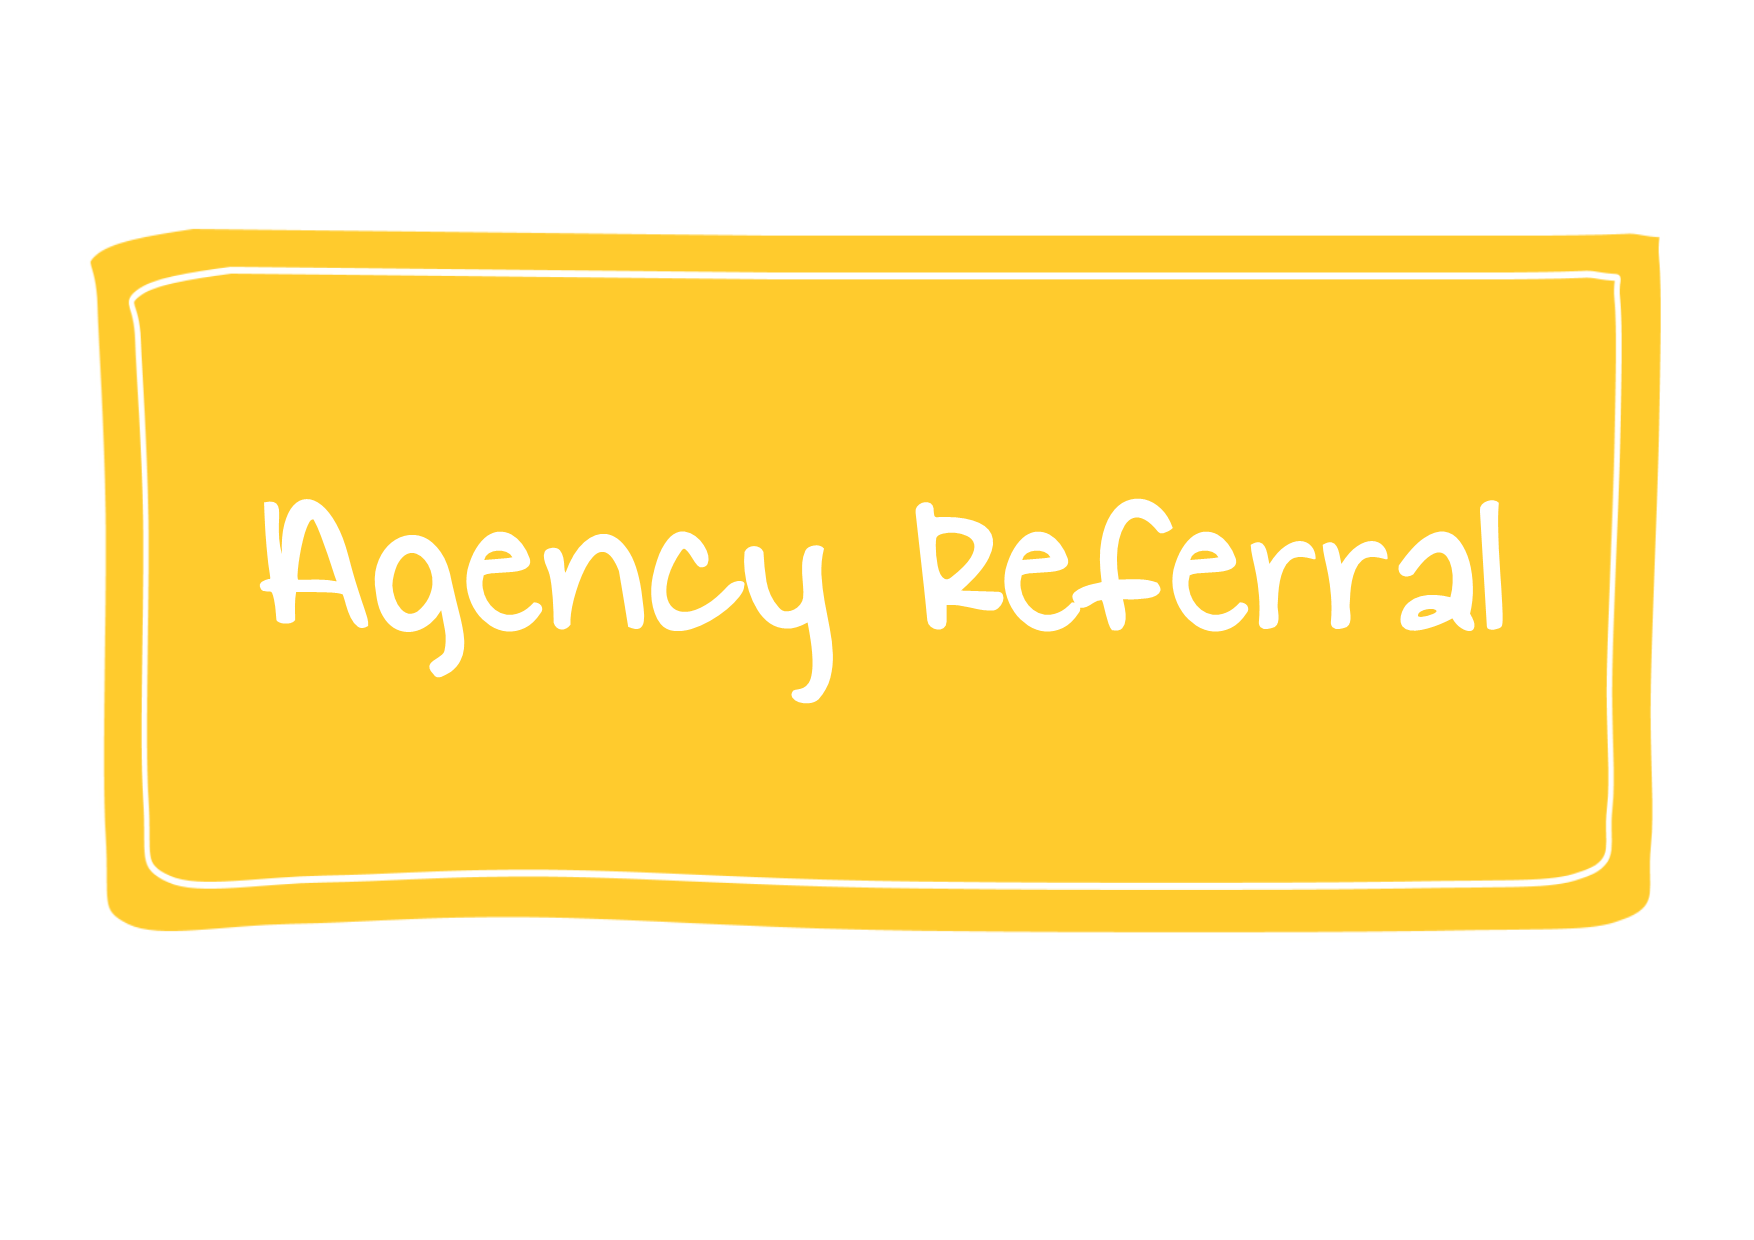 Agency referral button, links to form